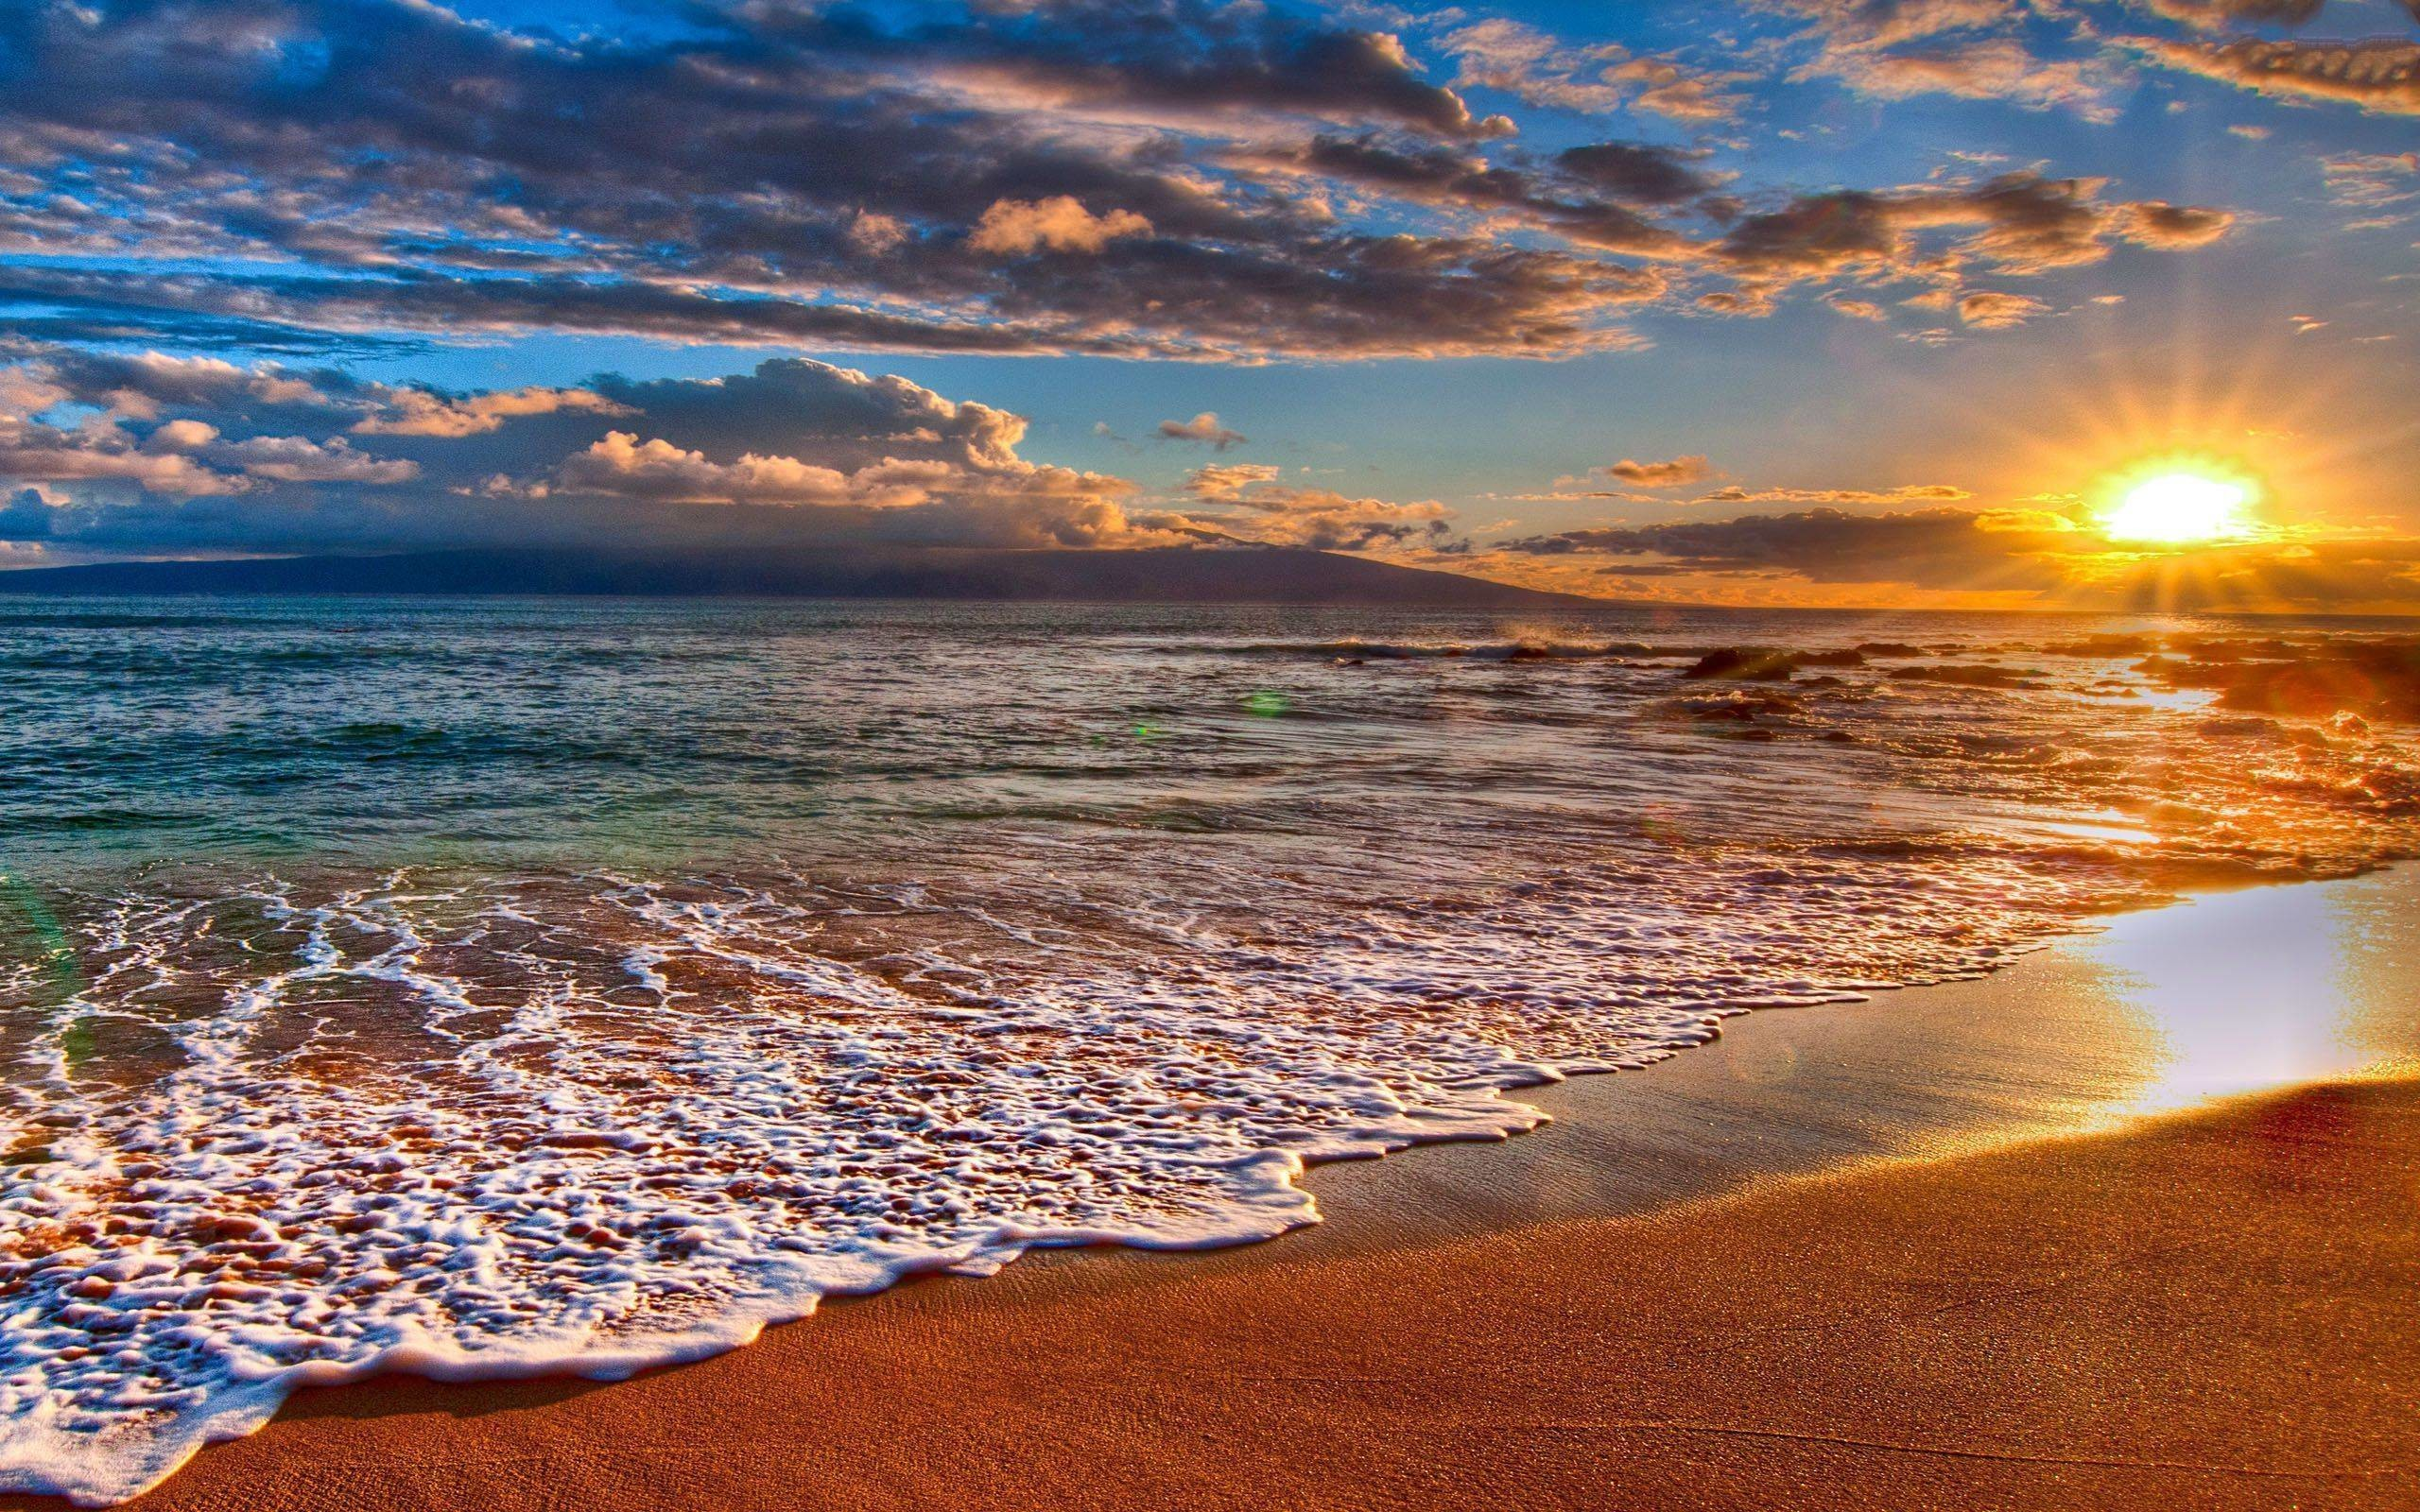 2560x1600 desktop backgrounds beach sunset wallpaper